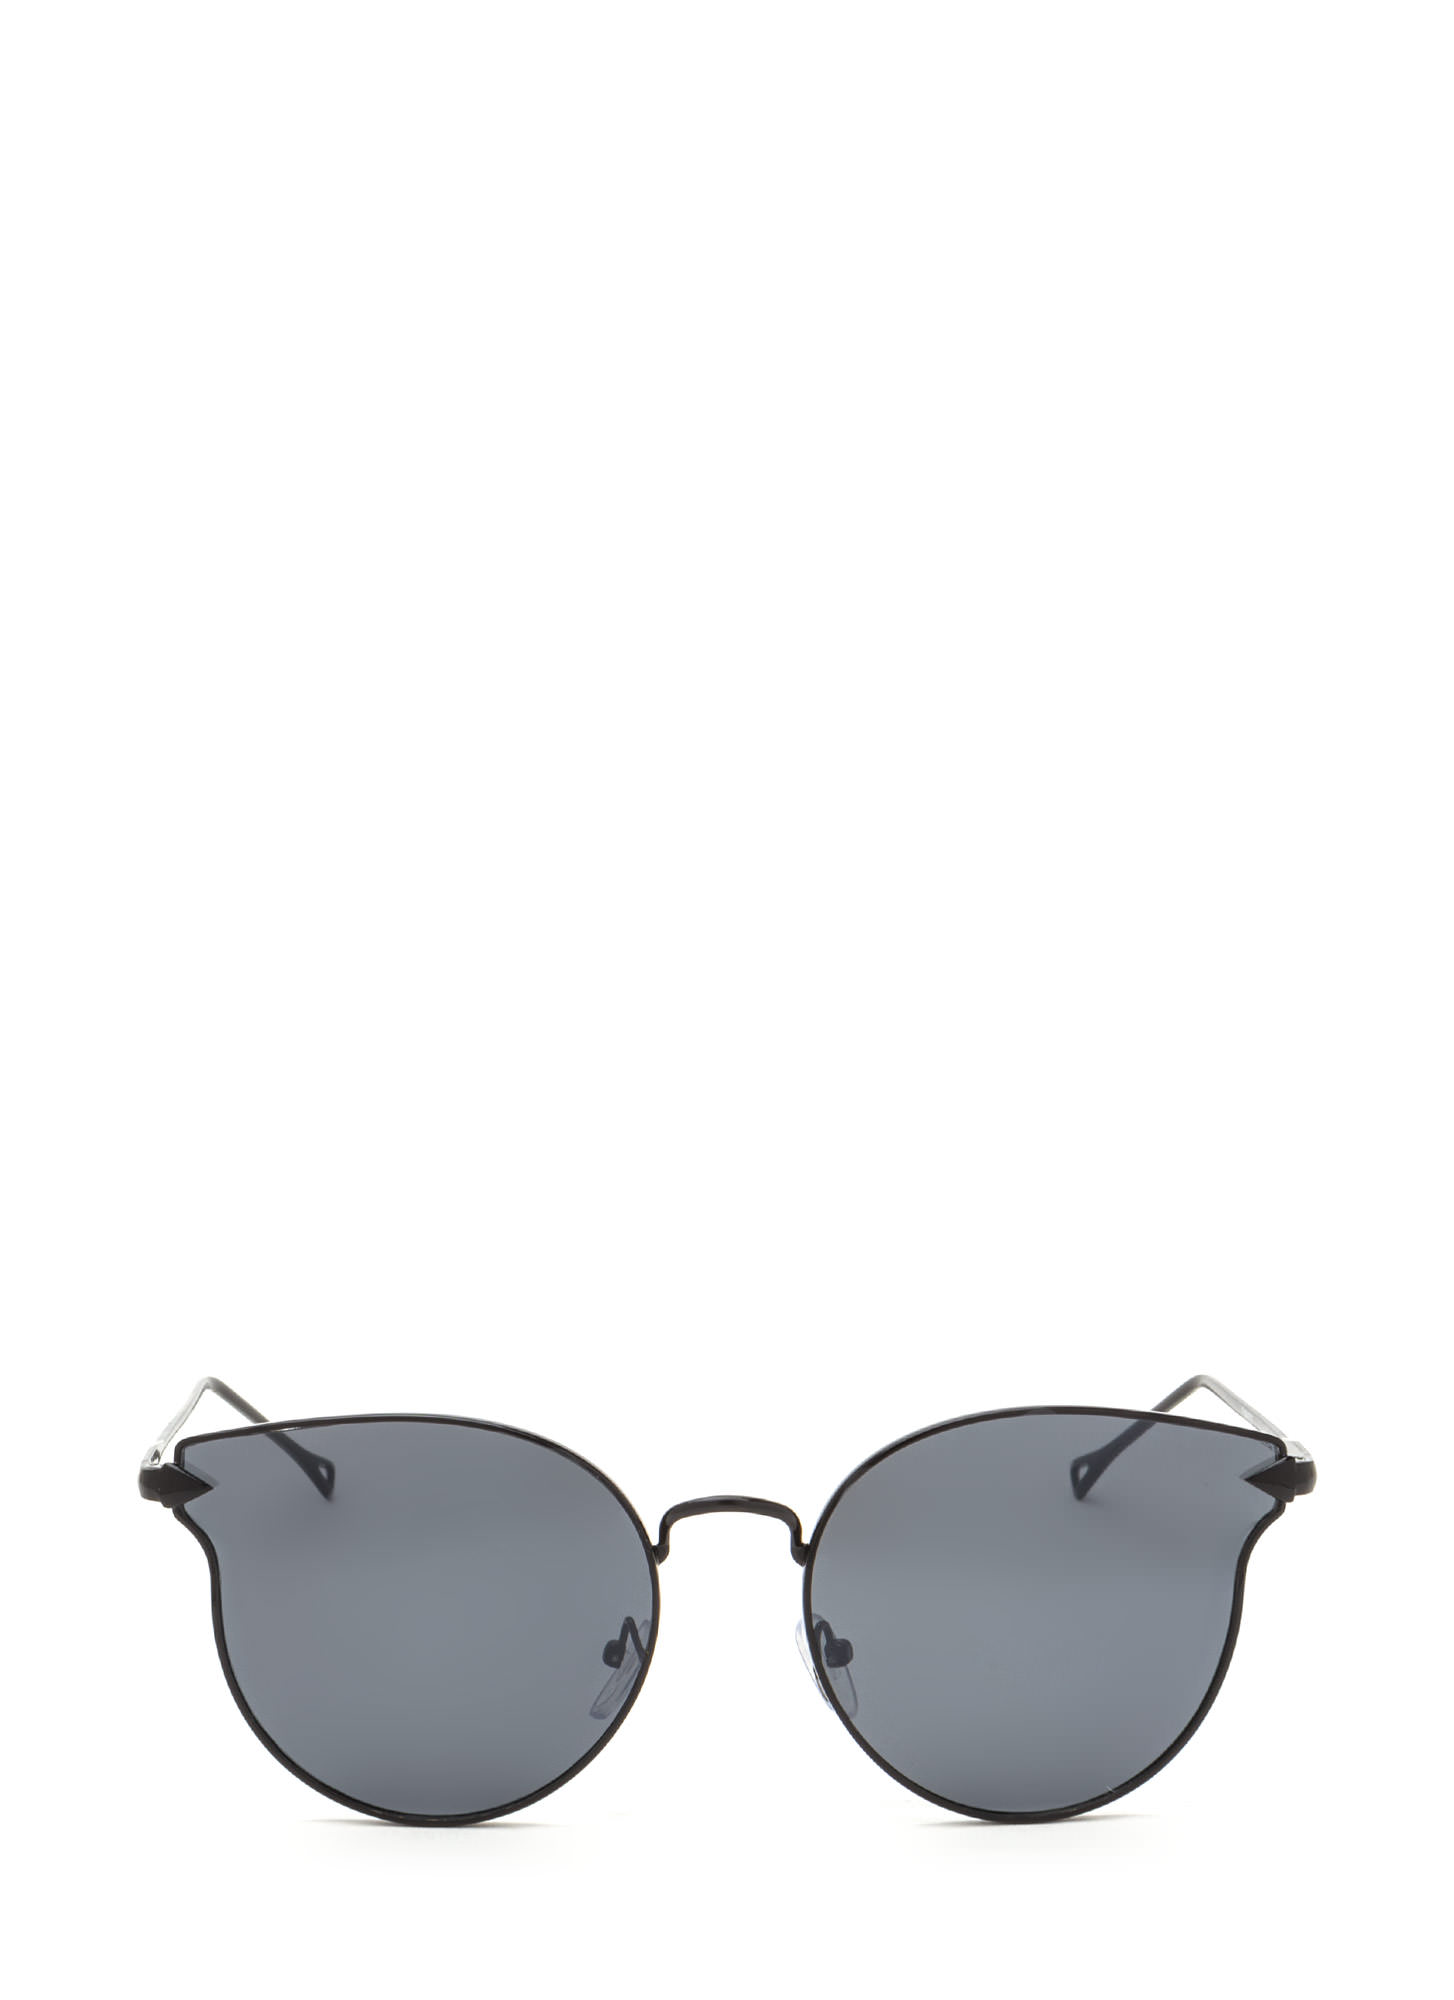 Point The Arrow Round Sunglasses CHARCOALBLK